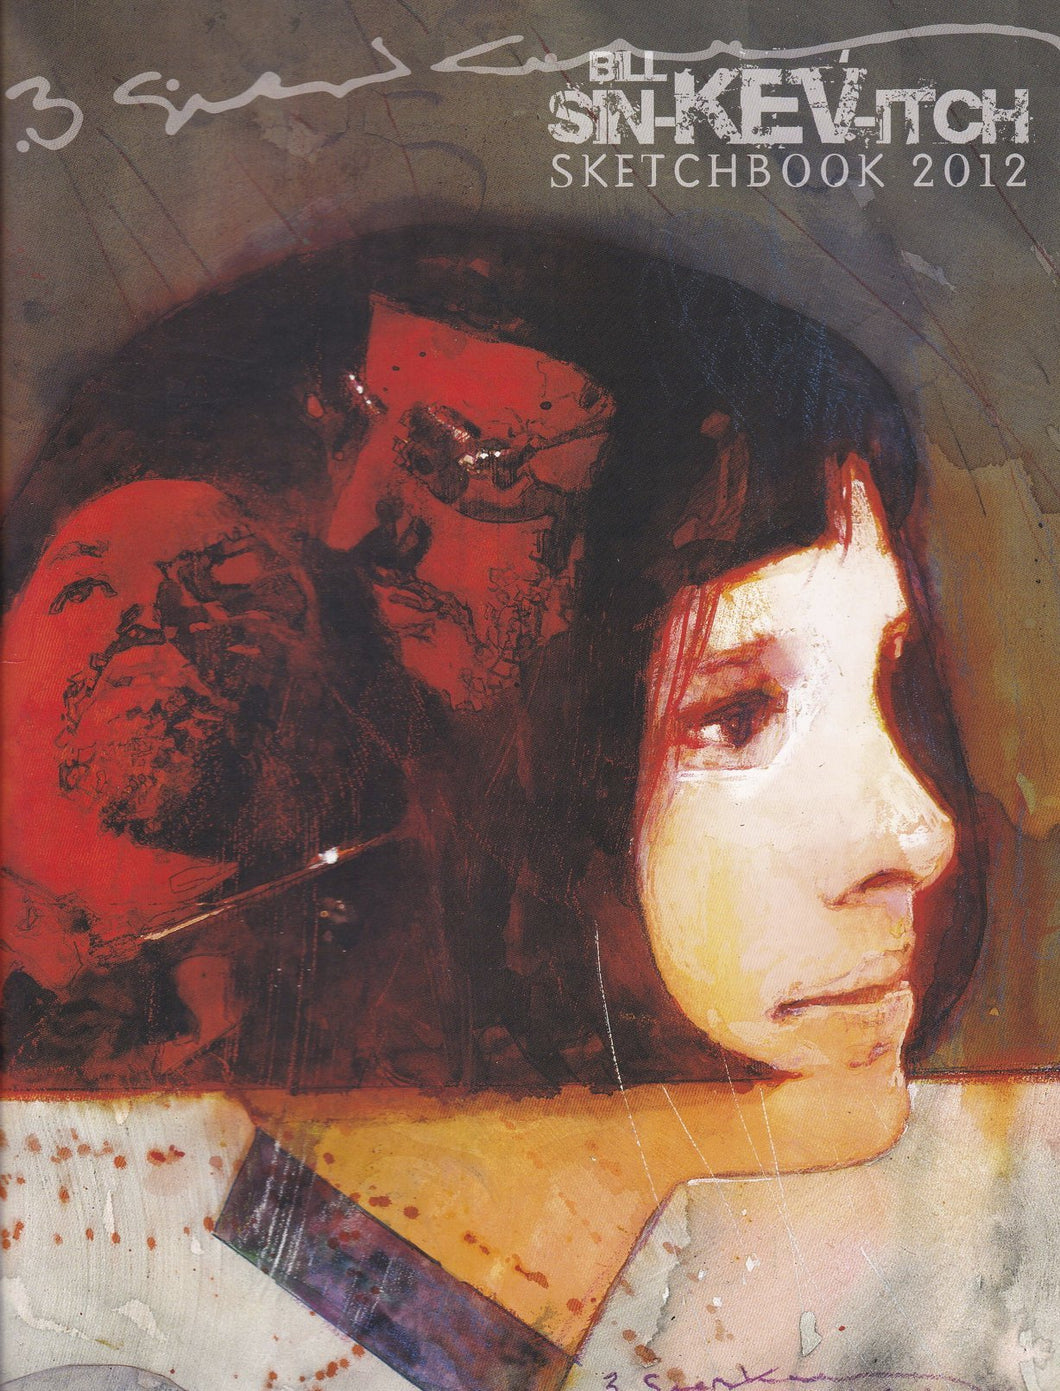 Bill Sienkiewicz Sketchbook 2012 SC